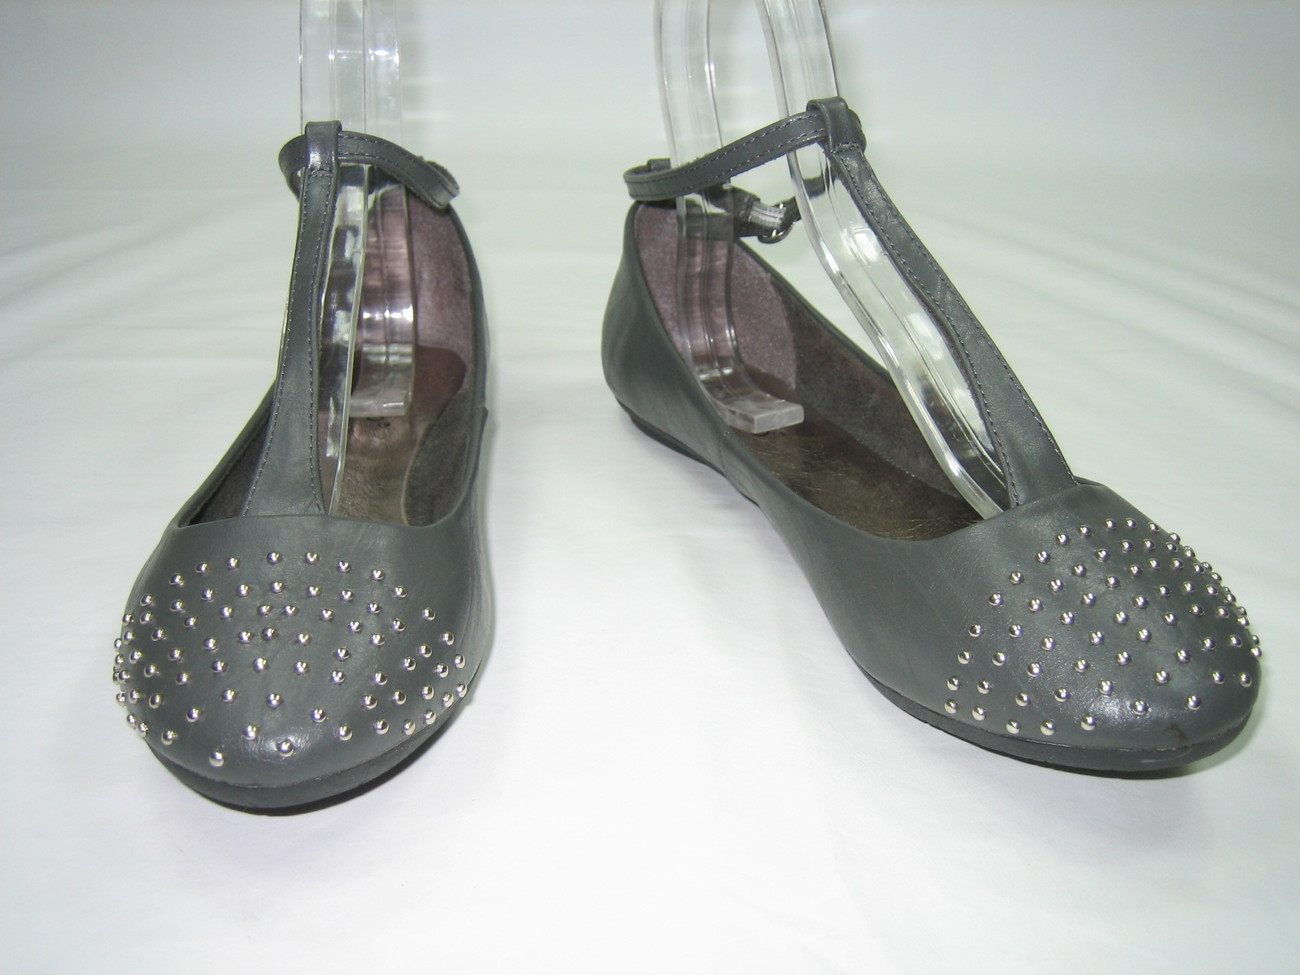 Ballerina comfort flats T-strap pumps decorative studs women's shoes gray